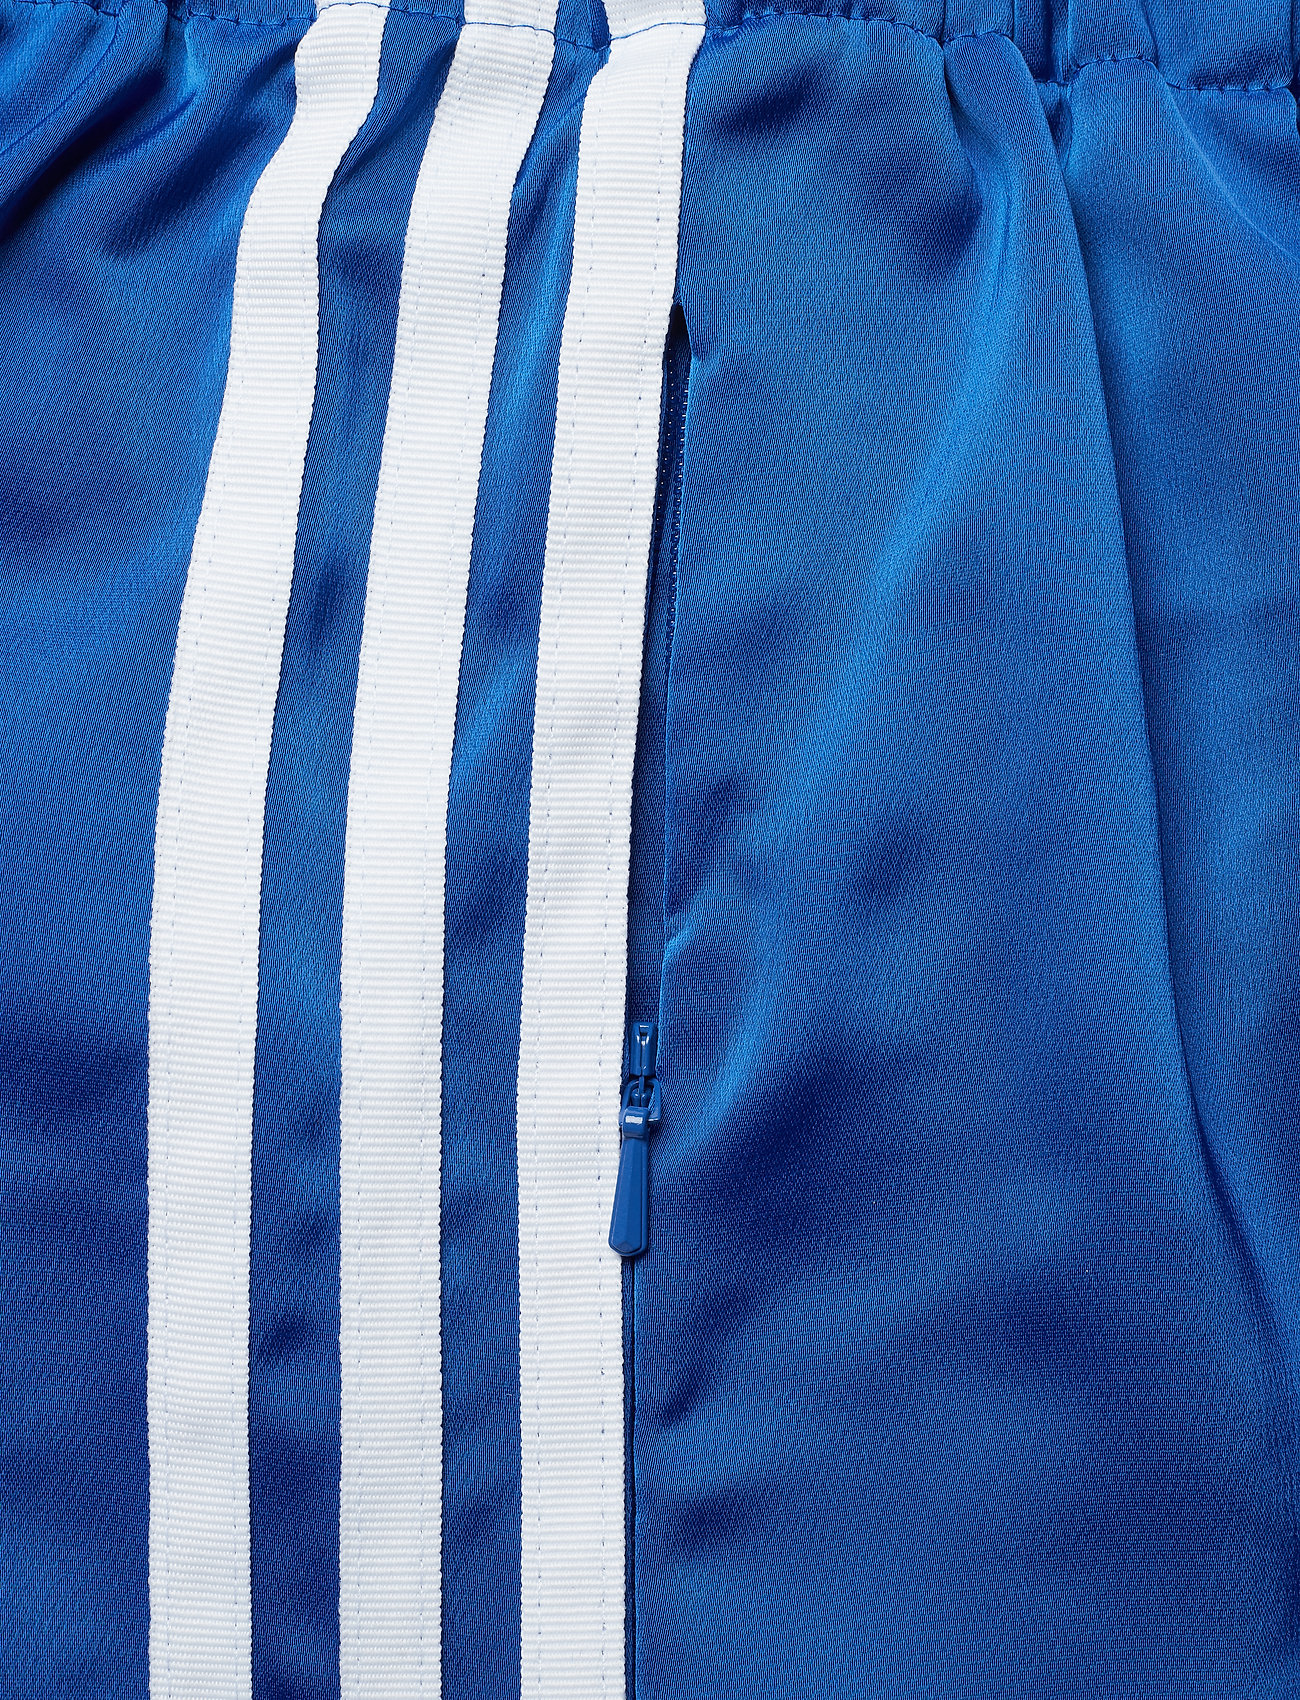 ShortscroyalAdidas Originals Originals Originals ShortscroyalAdidas ShortscroyalAdidas Originals ShortscroyalAdidas ShortscroyalAdidas ShortscroyalAdidas Originals Originals Originals ShortscroyalAdidas nmN80wv